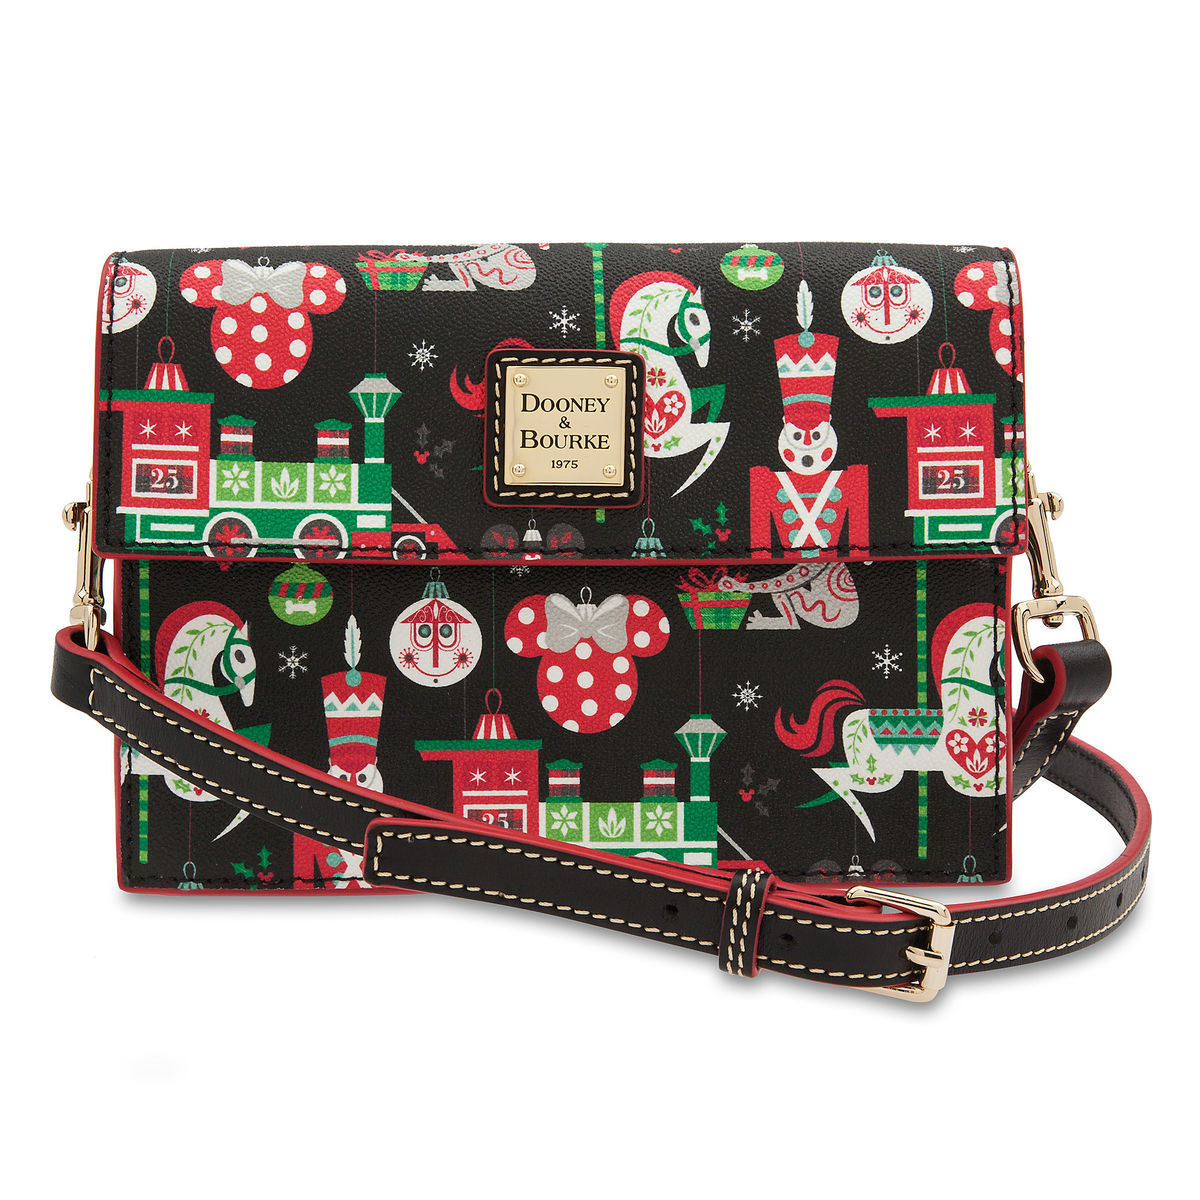 Disney Dooney & Bourke Bag - Disney Parks Holiday Crossbody - 2018